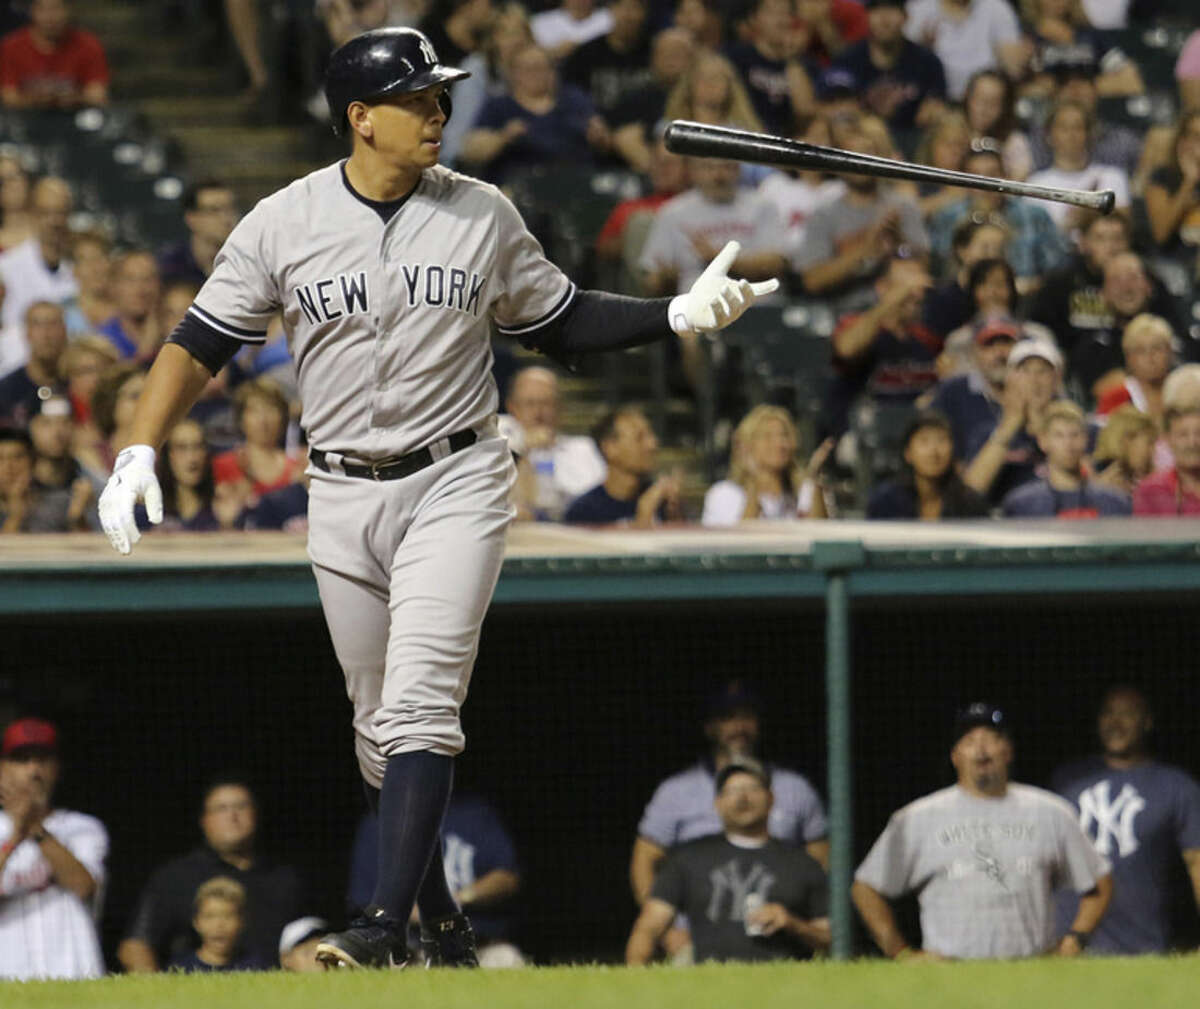 New York Yankees Alex Rodriguez flips his bat fter striking out during the eighth inning of a baseball game against the Cleveland Indians on Thursday, Aug. 13, 2015, 2015, in Cleveland. (AP Photo/Aaron Josefczyk)